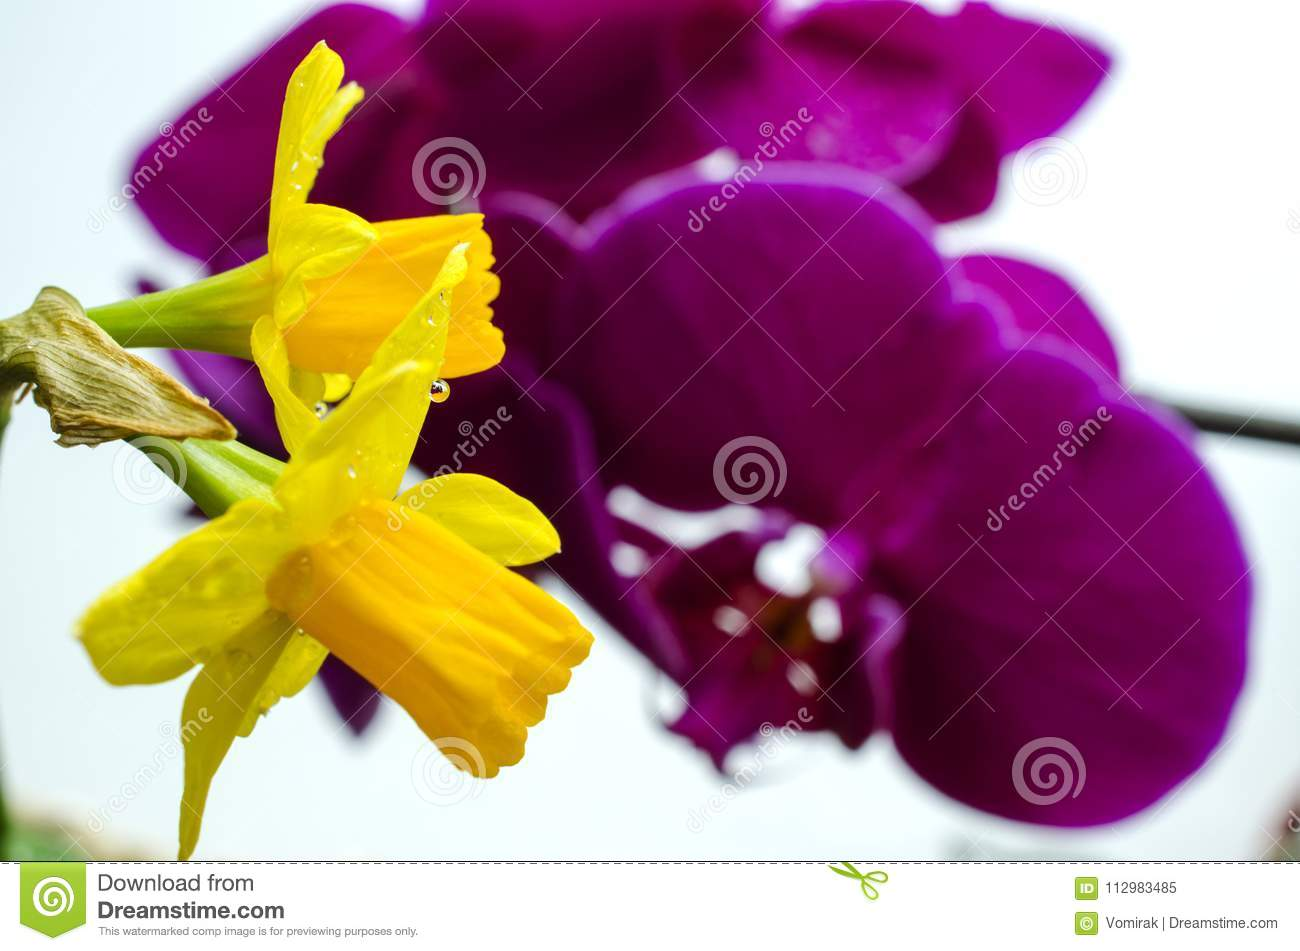 Two bright yellow flowers of daffodils on a background of purple orchids